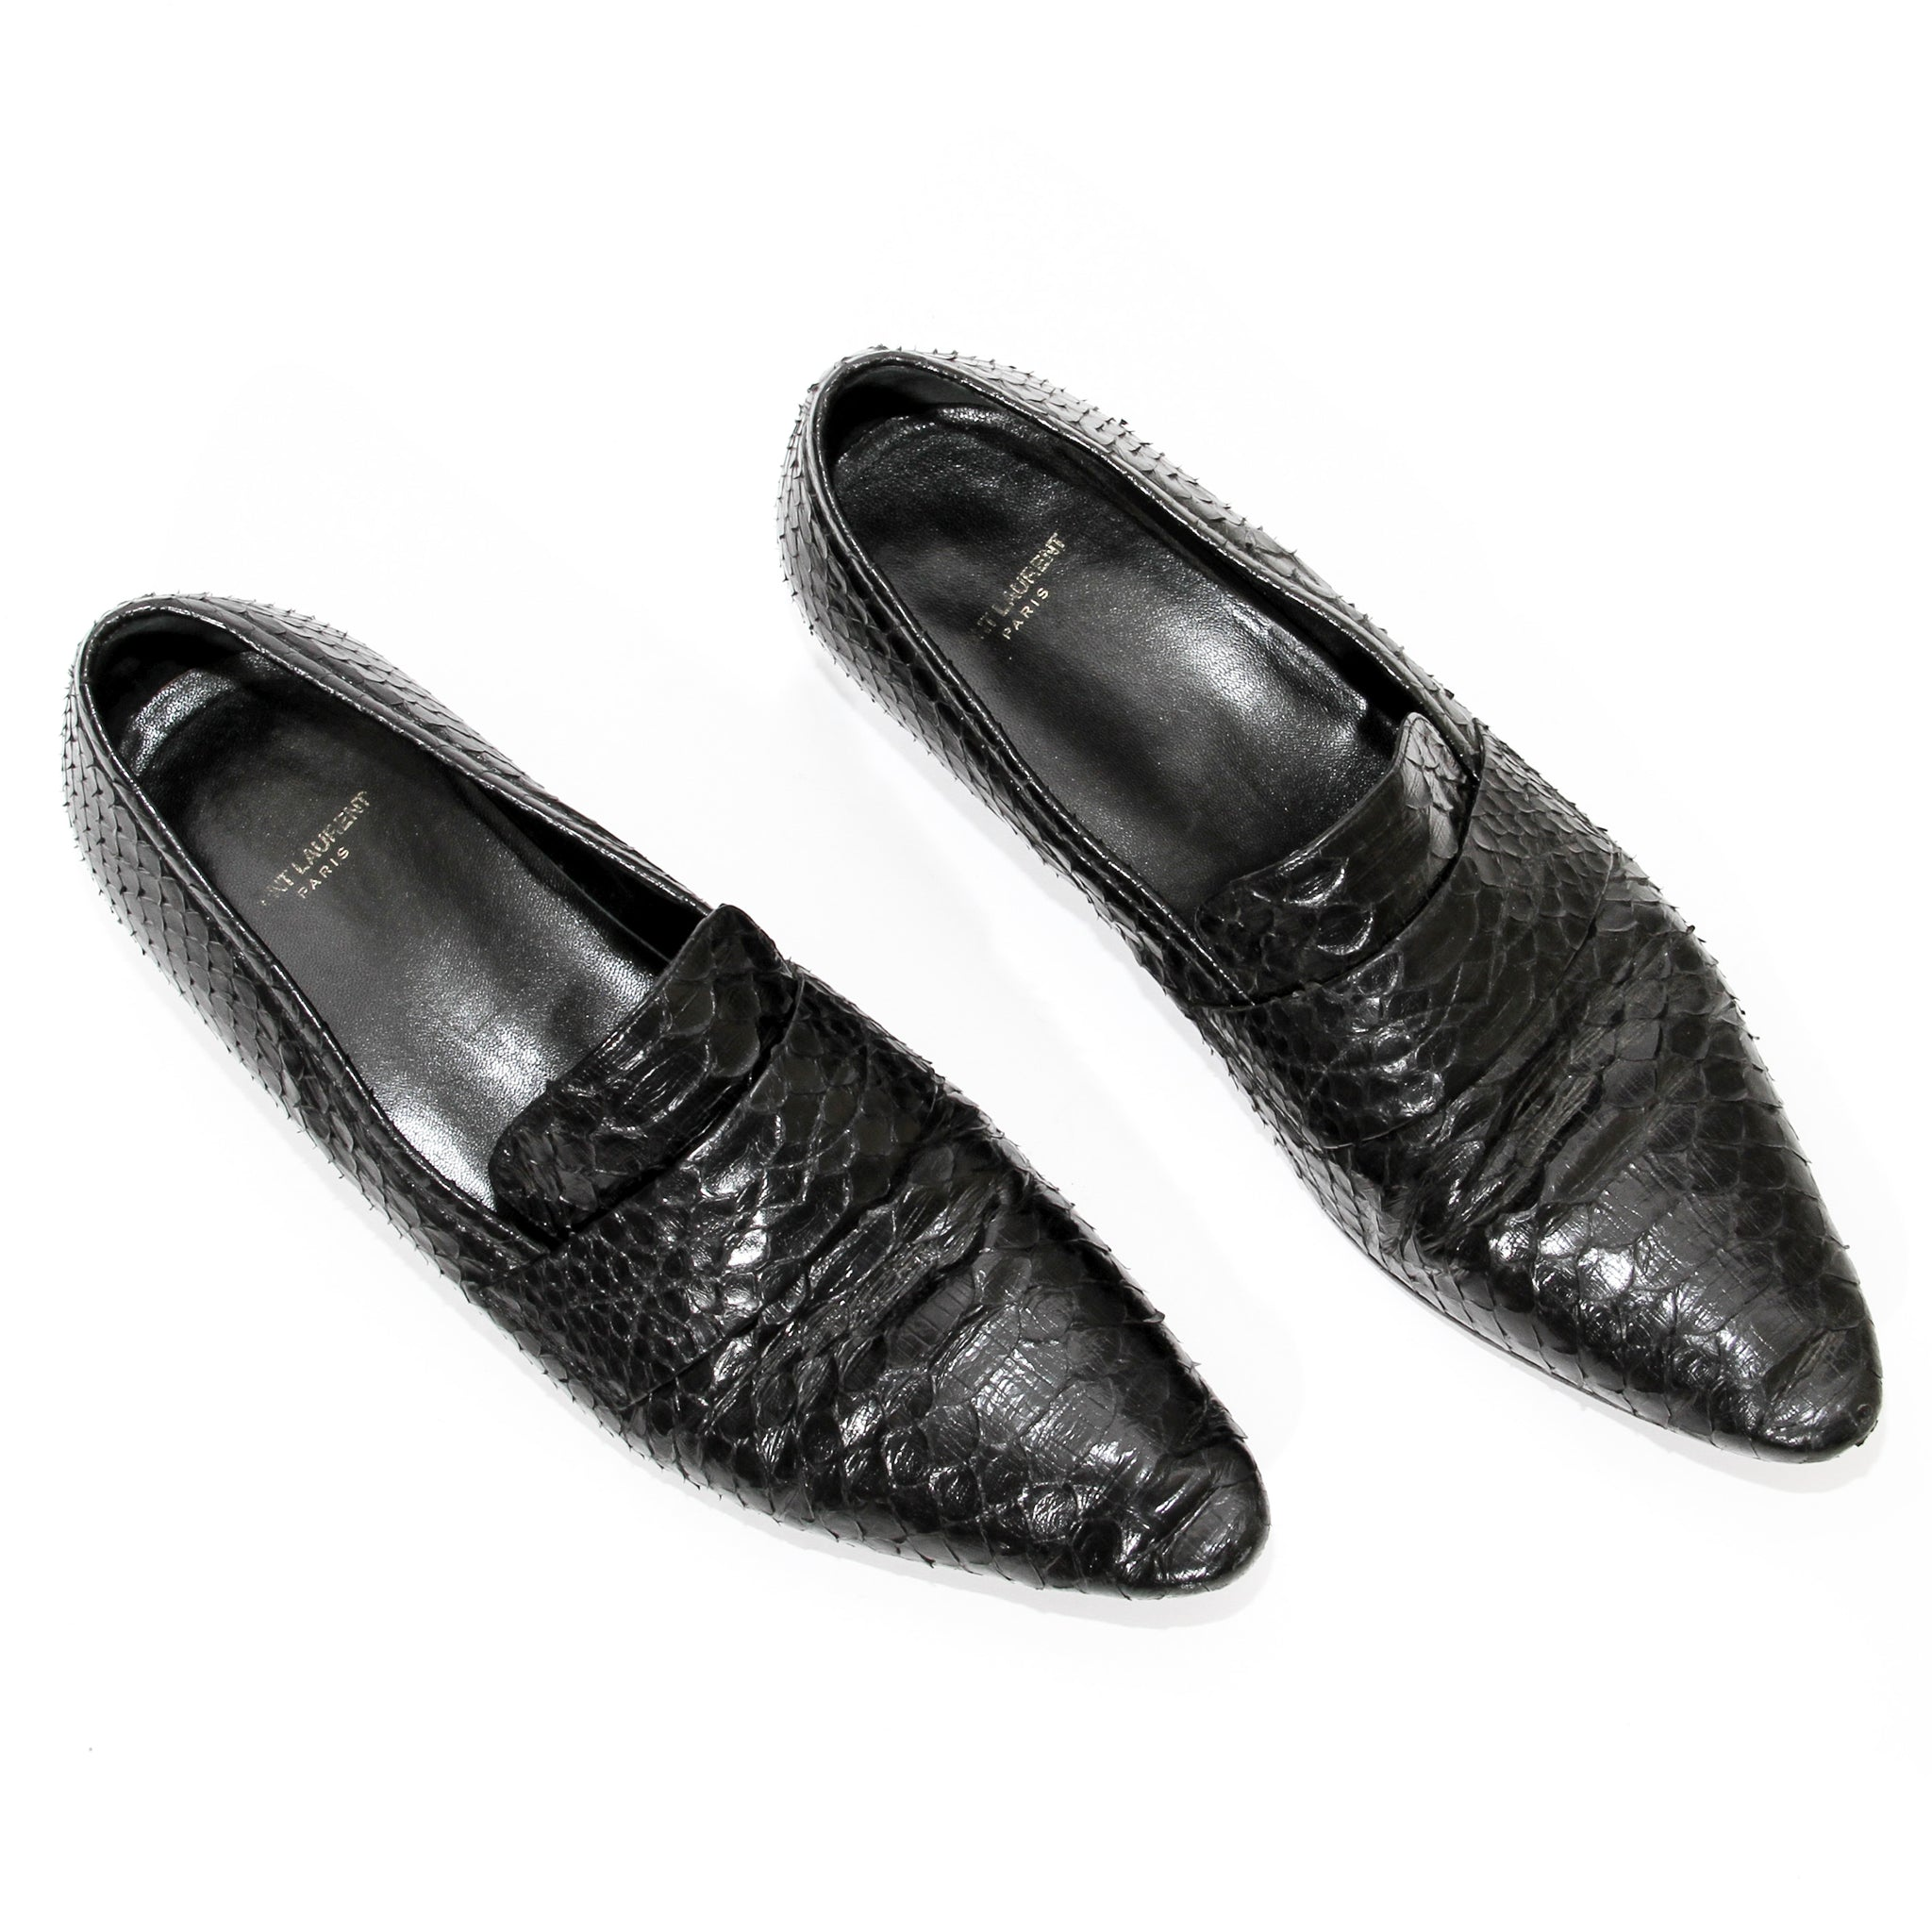 Saint Laurent Paris Reptile Loafer